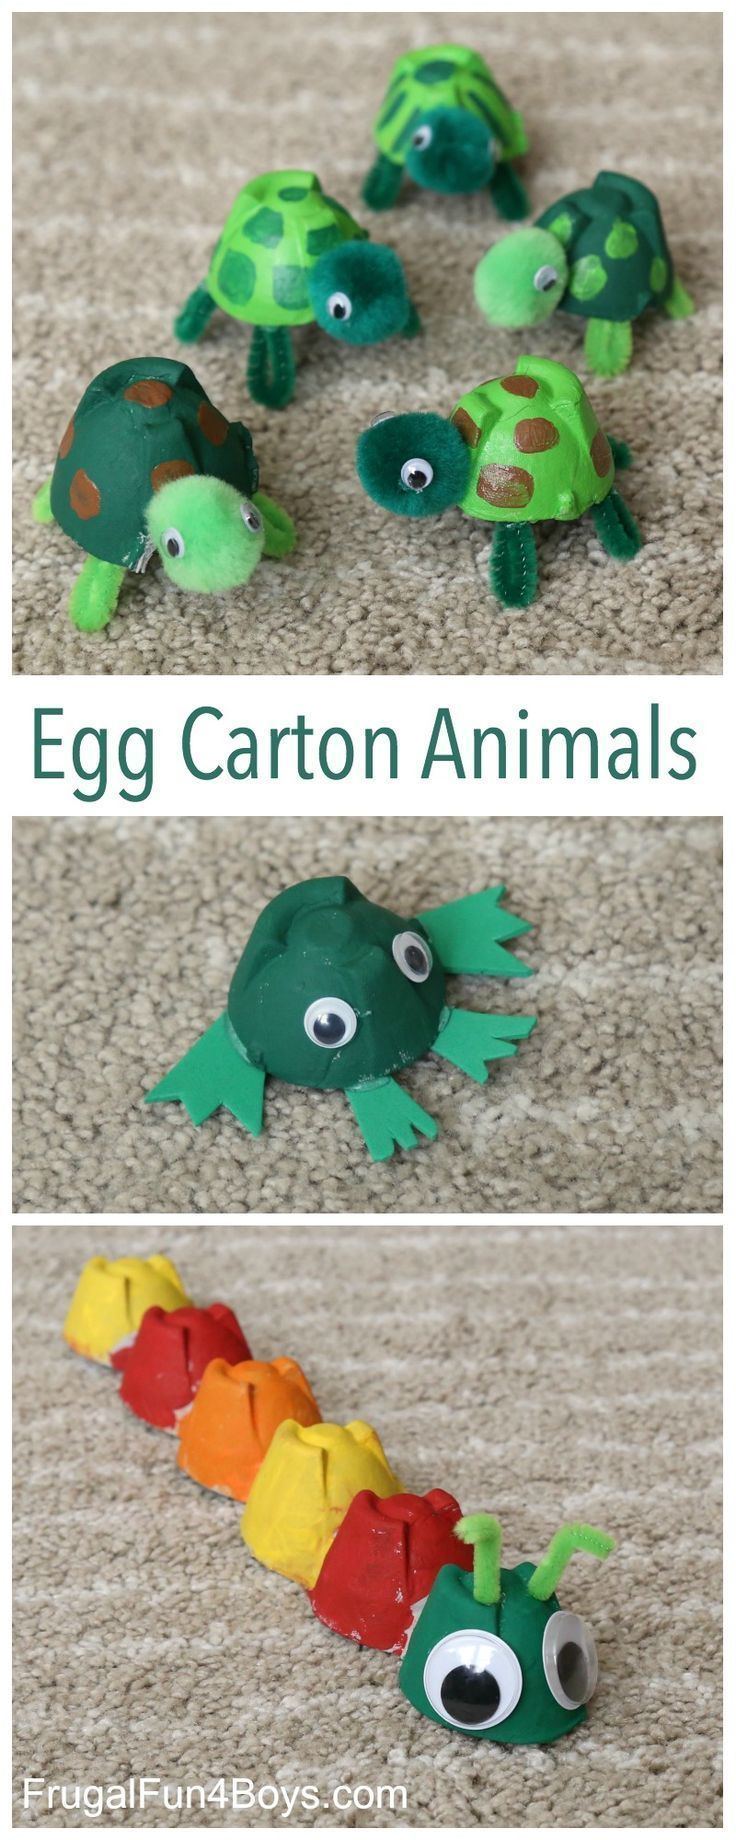 Adorable Egg Carton Turtle Craft (And a Caterpillar and Frog too!) – Pretty Opinionated